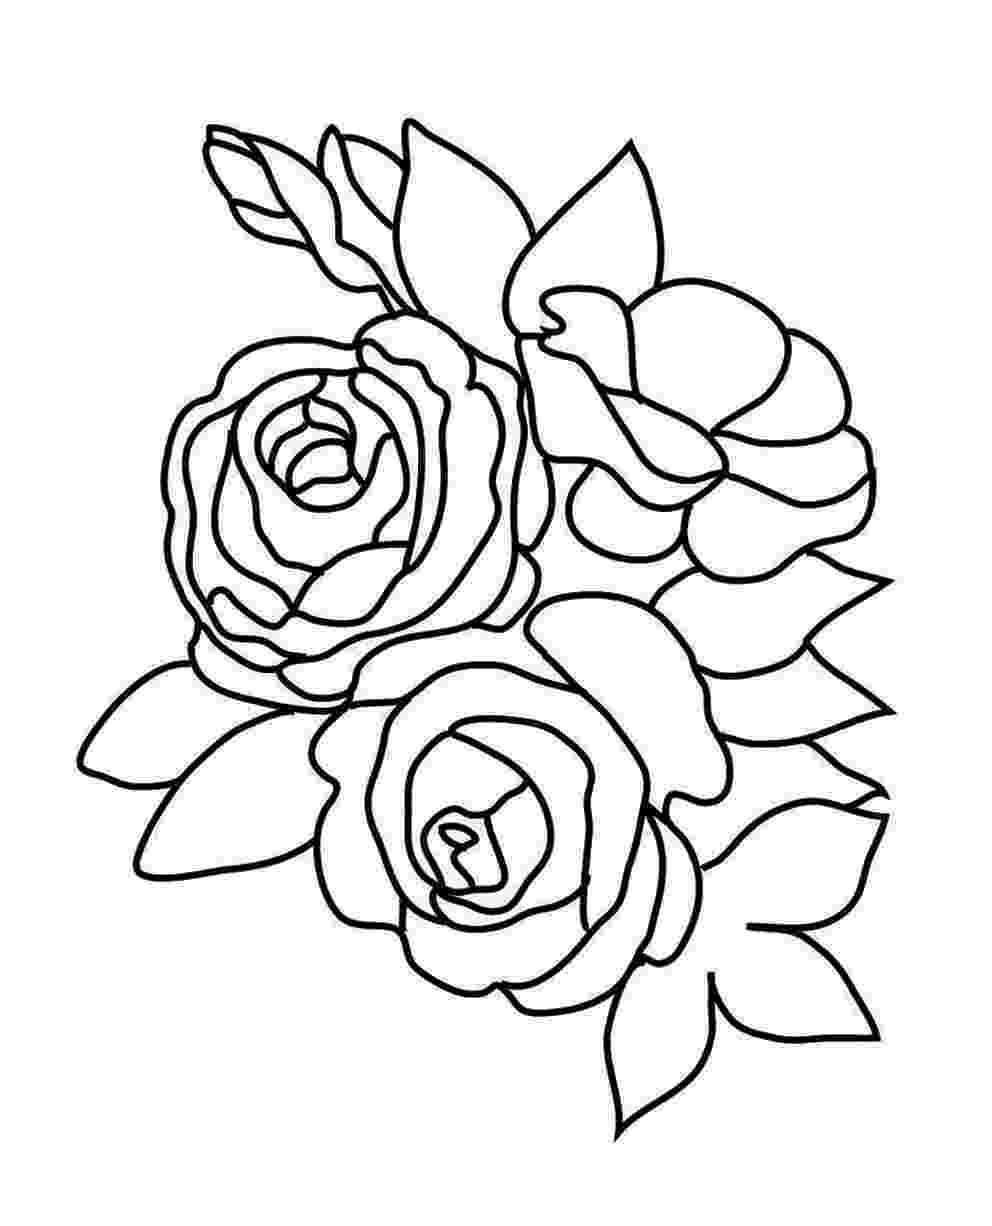 rose flower coloring page rose flower for beautiful lady coloring page download page flower rose coloring